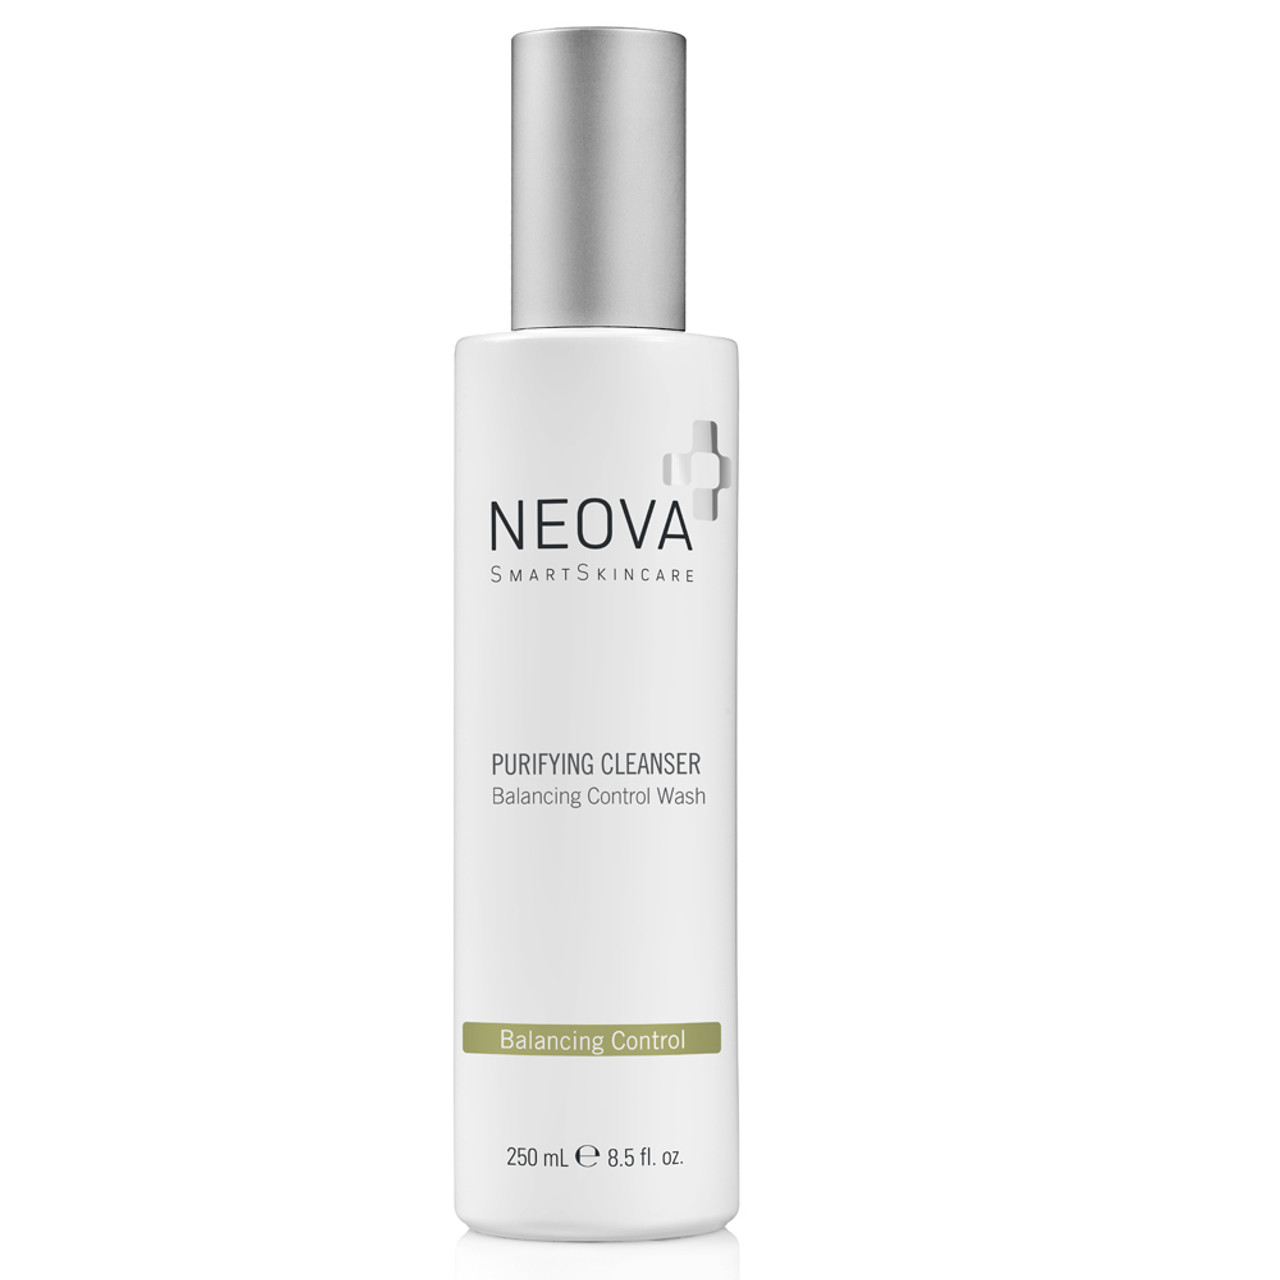 Neova Purifying Cleanser